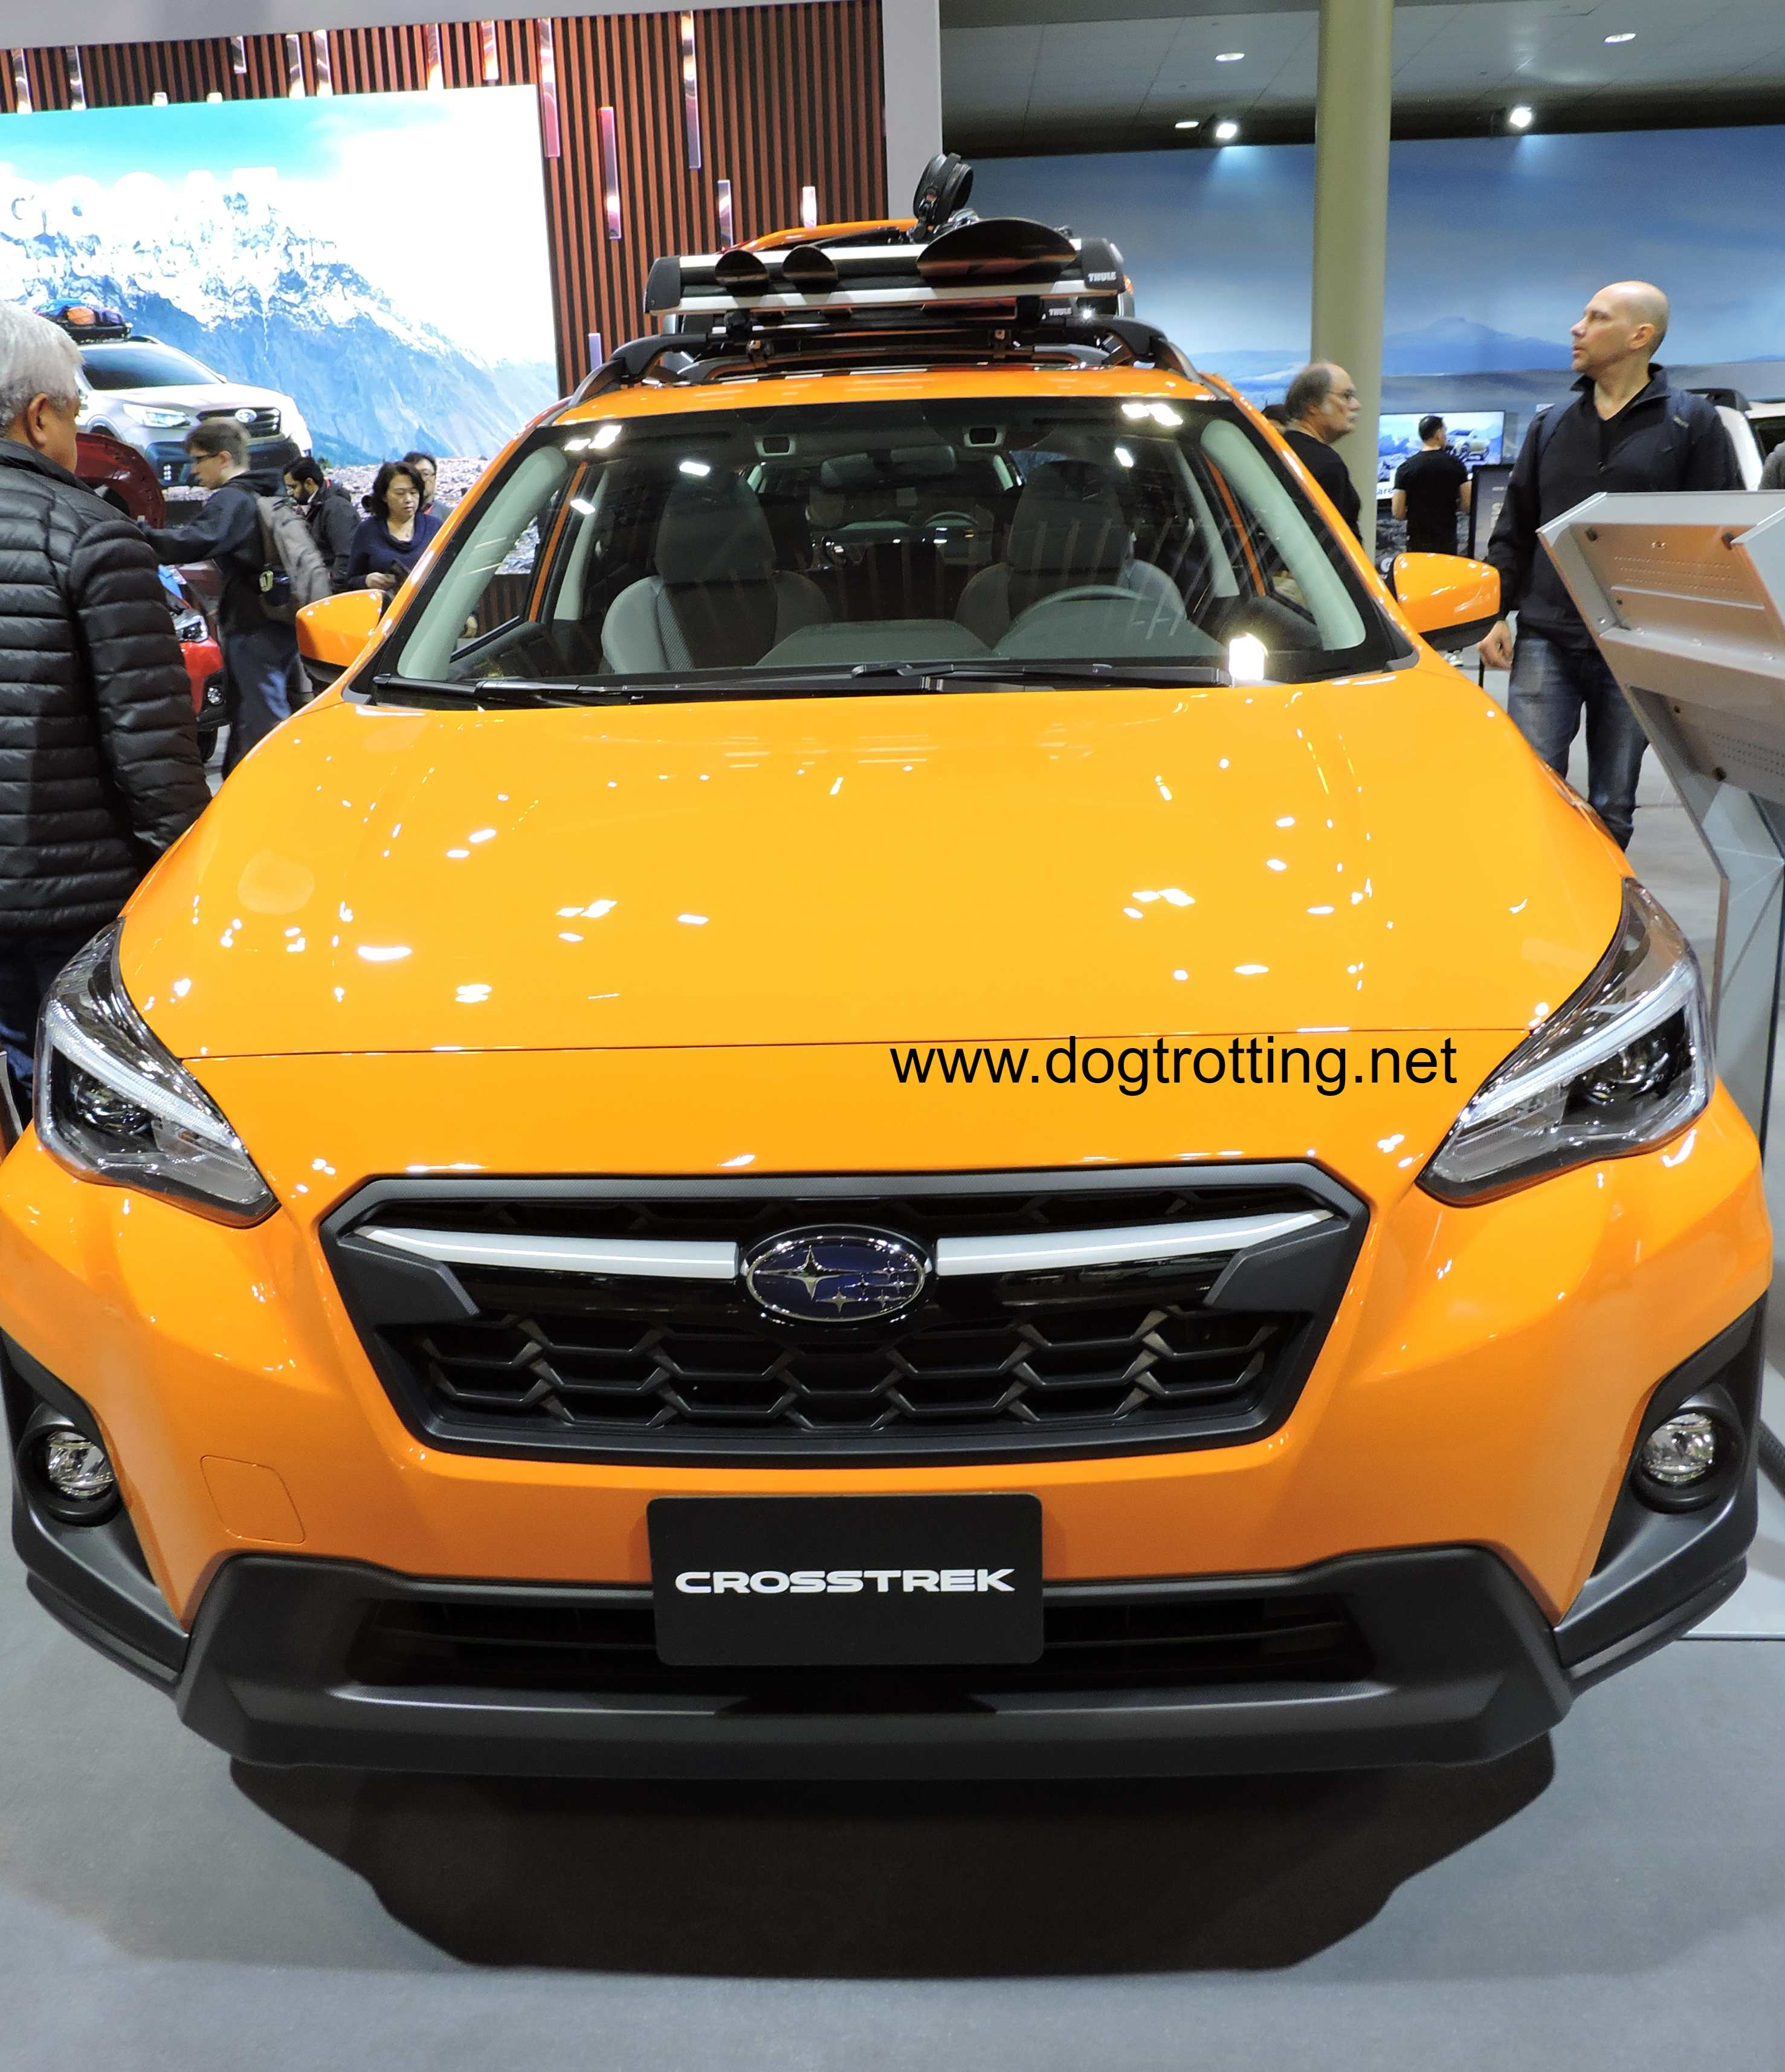 front of yellow Subaru at auto show